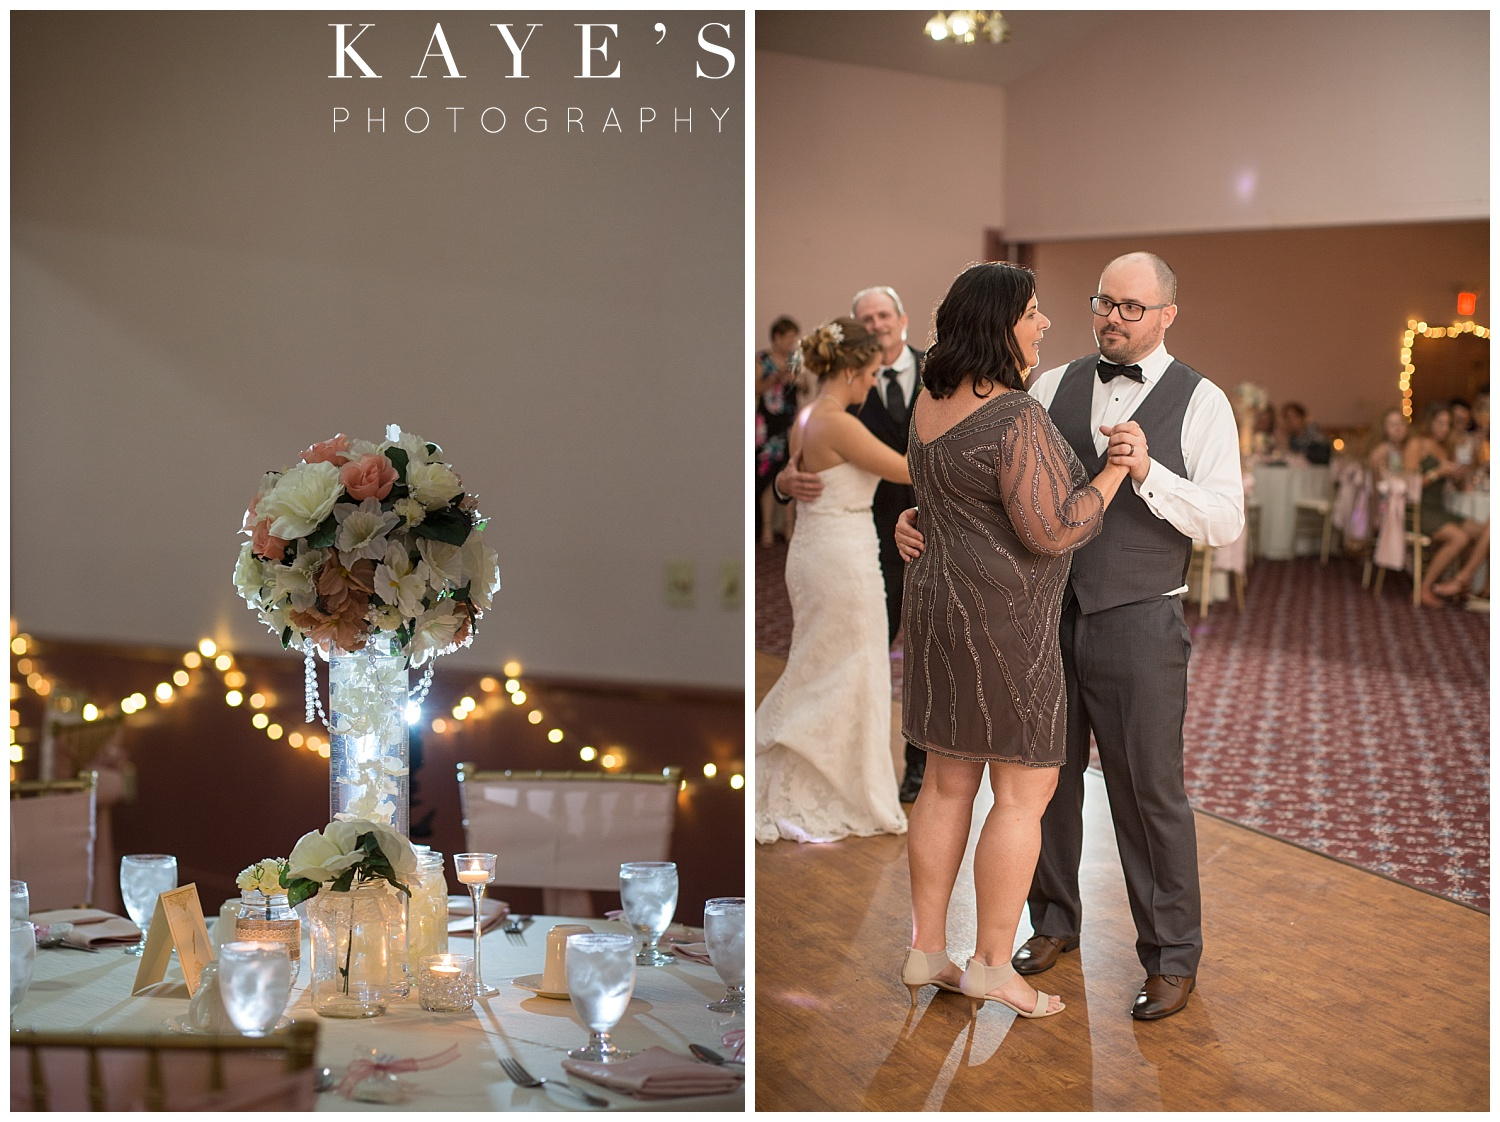 Bride and groom dancing with their parents during wedding at crossroads village!